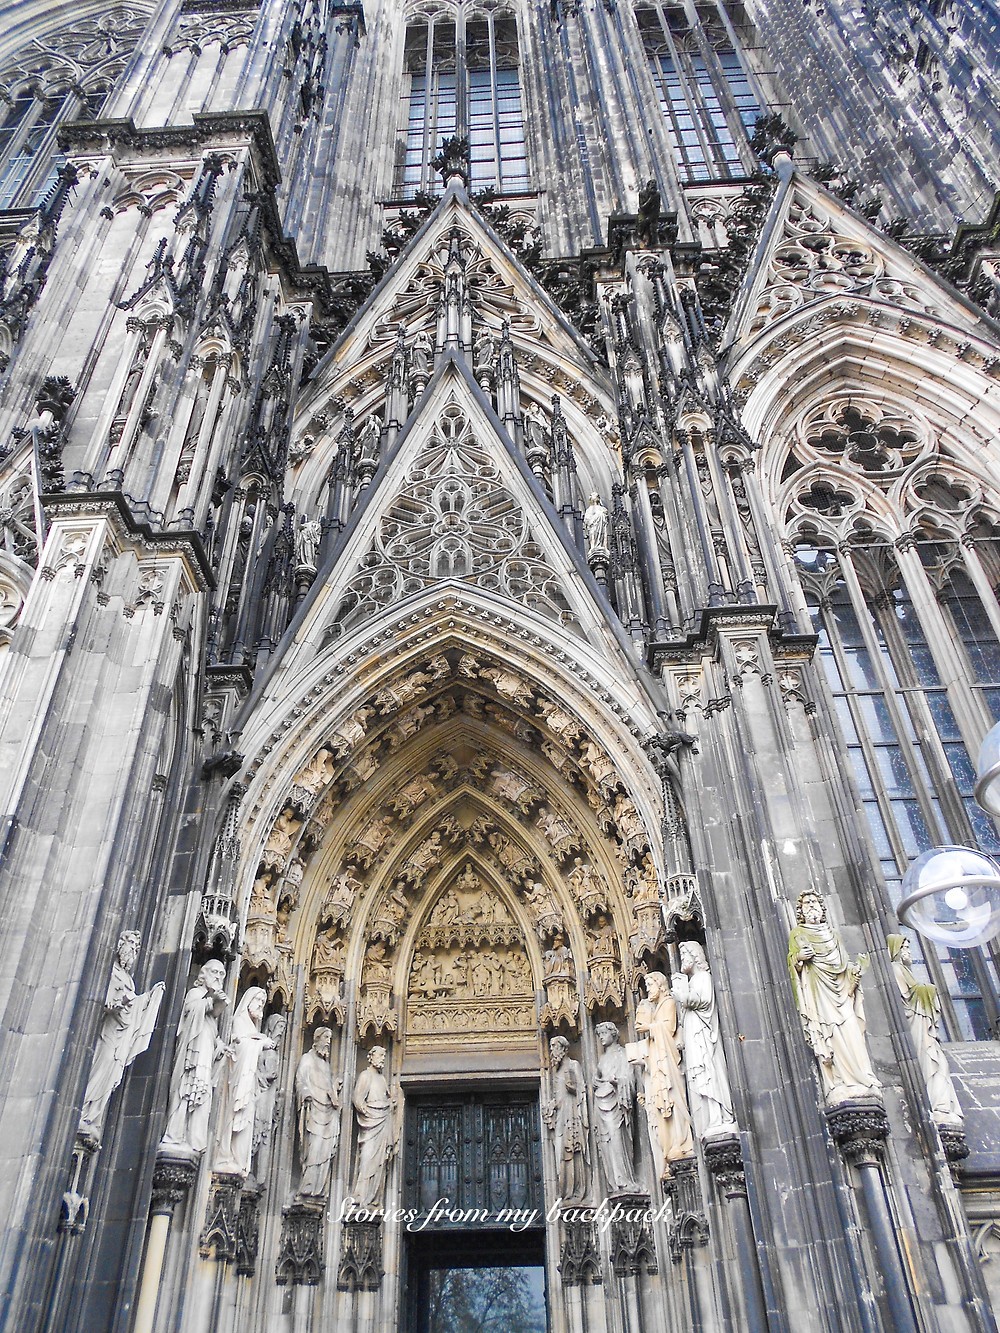 Cologne Cathedral, Koln dom, cologne sightseeing, things to do in Cologne, offbeat things to do in cologne